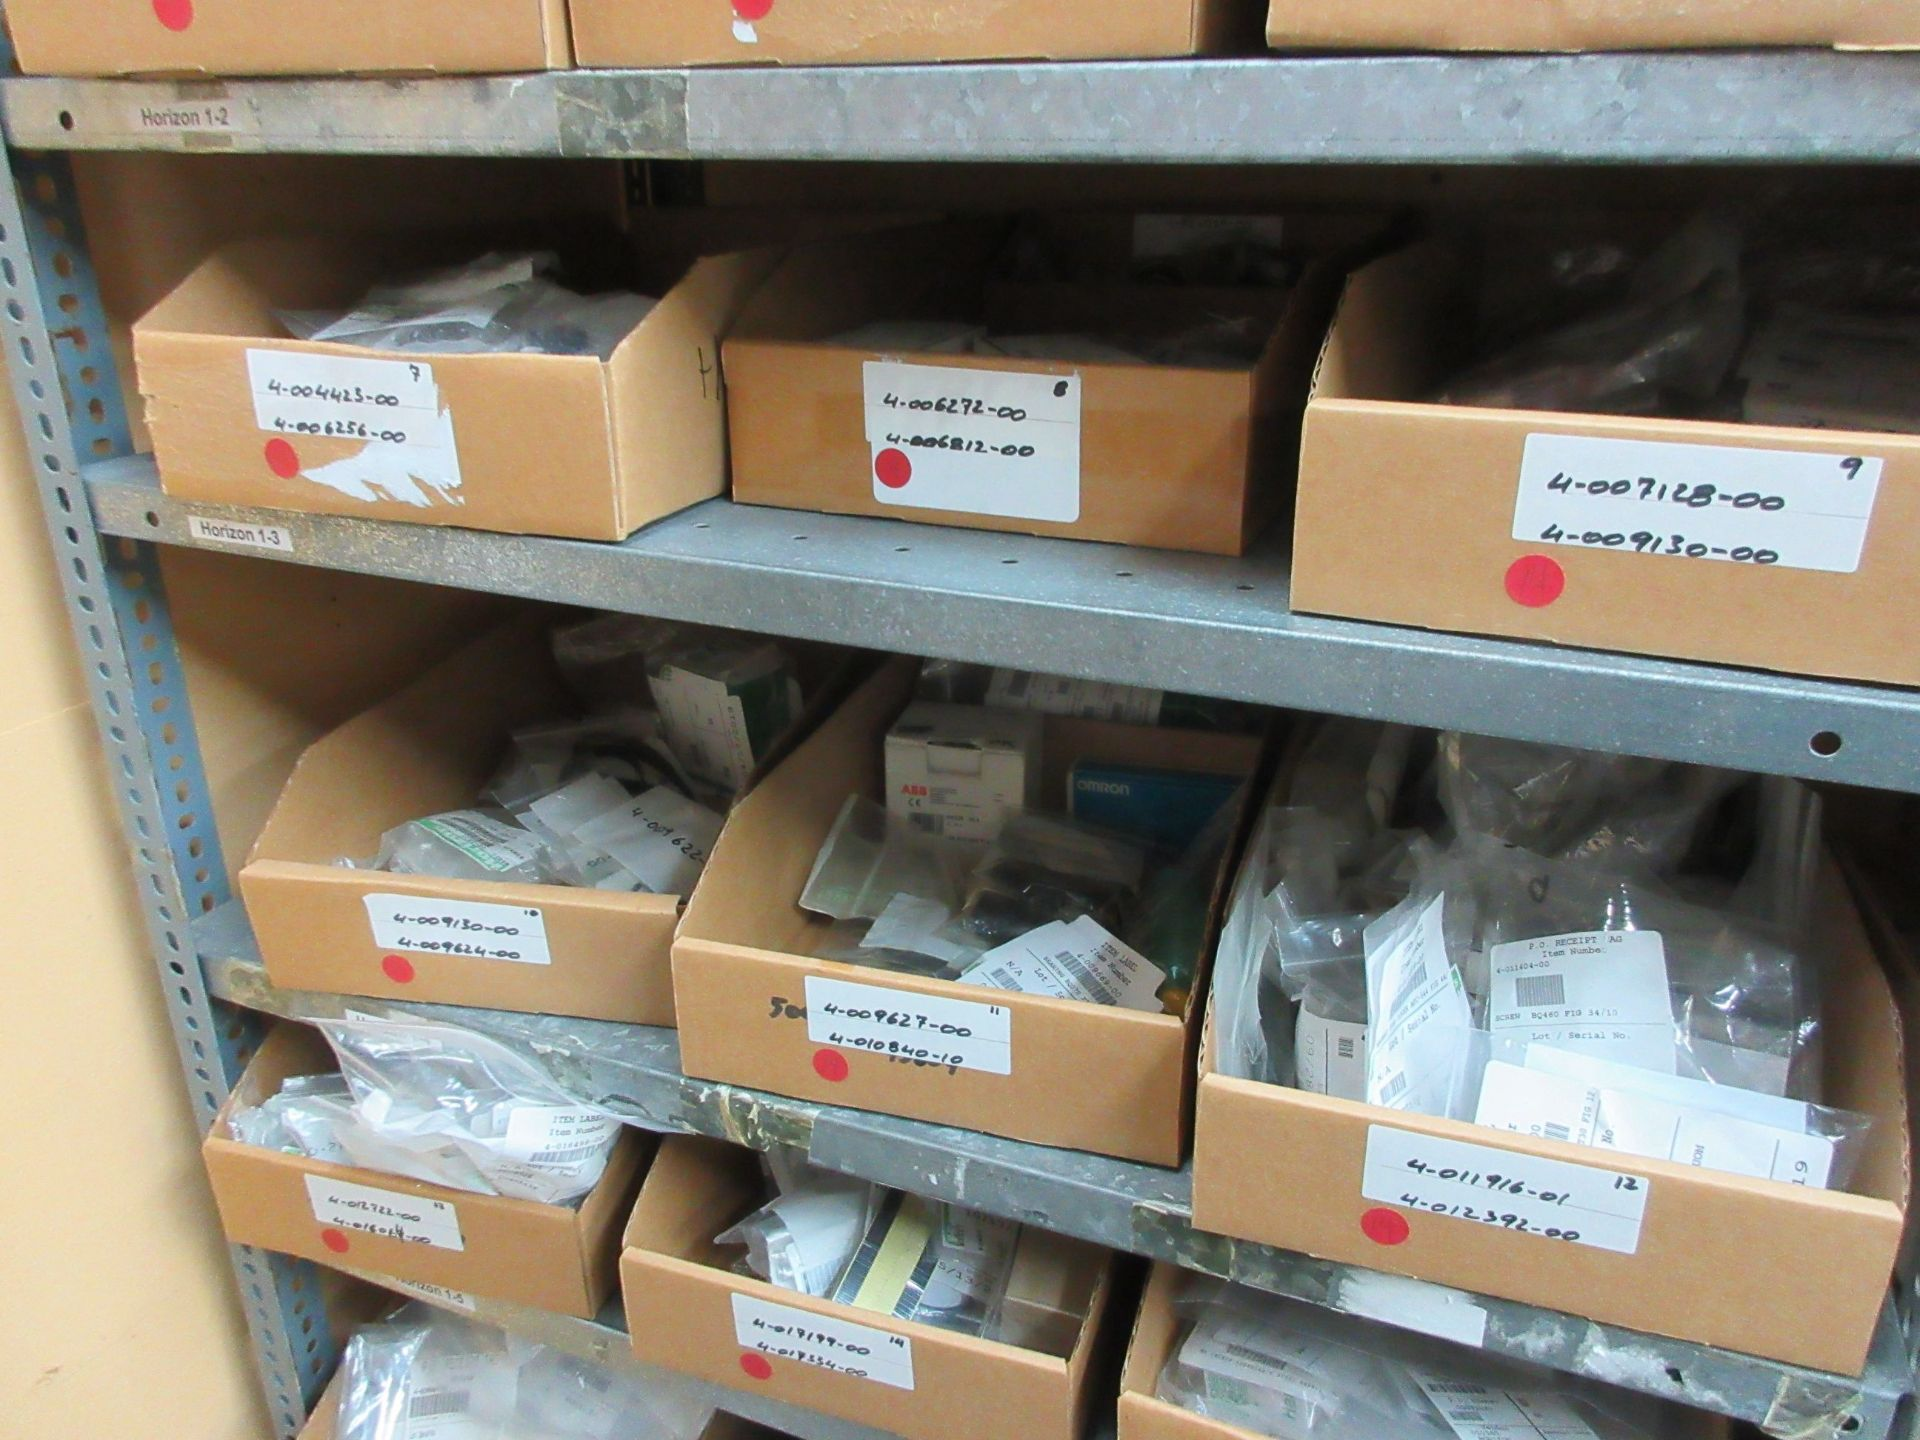 LOT Including boxes of assorted parts for STANDARD HORIZON (approx. Qty 27 boxes) - Image 4 of 6